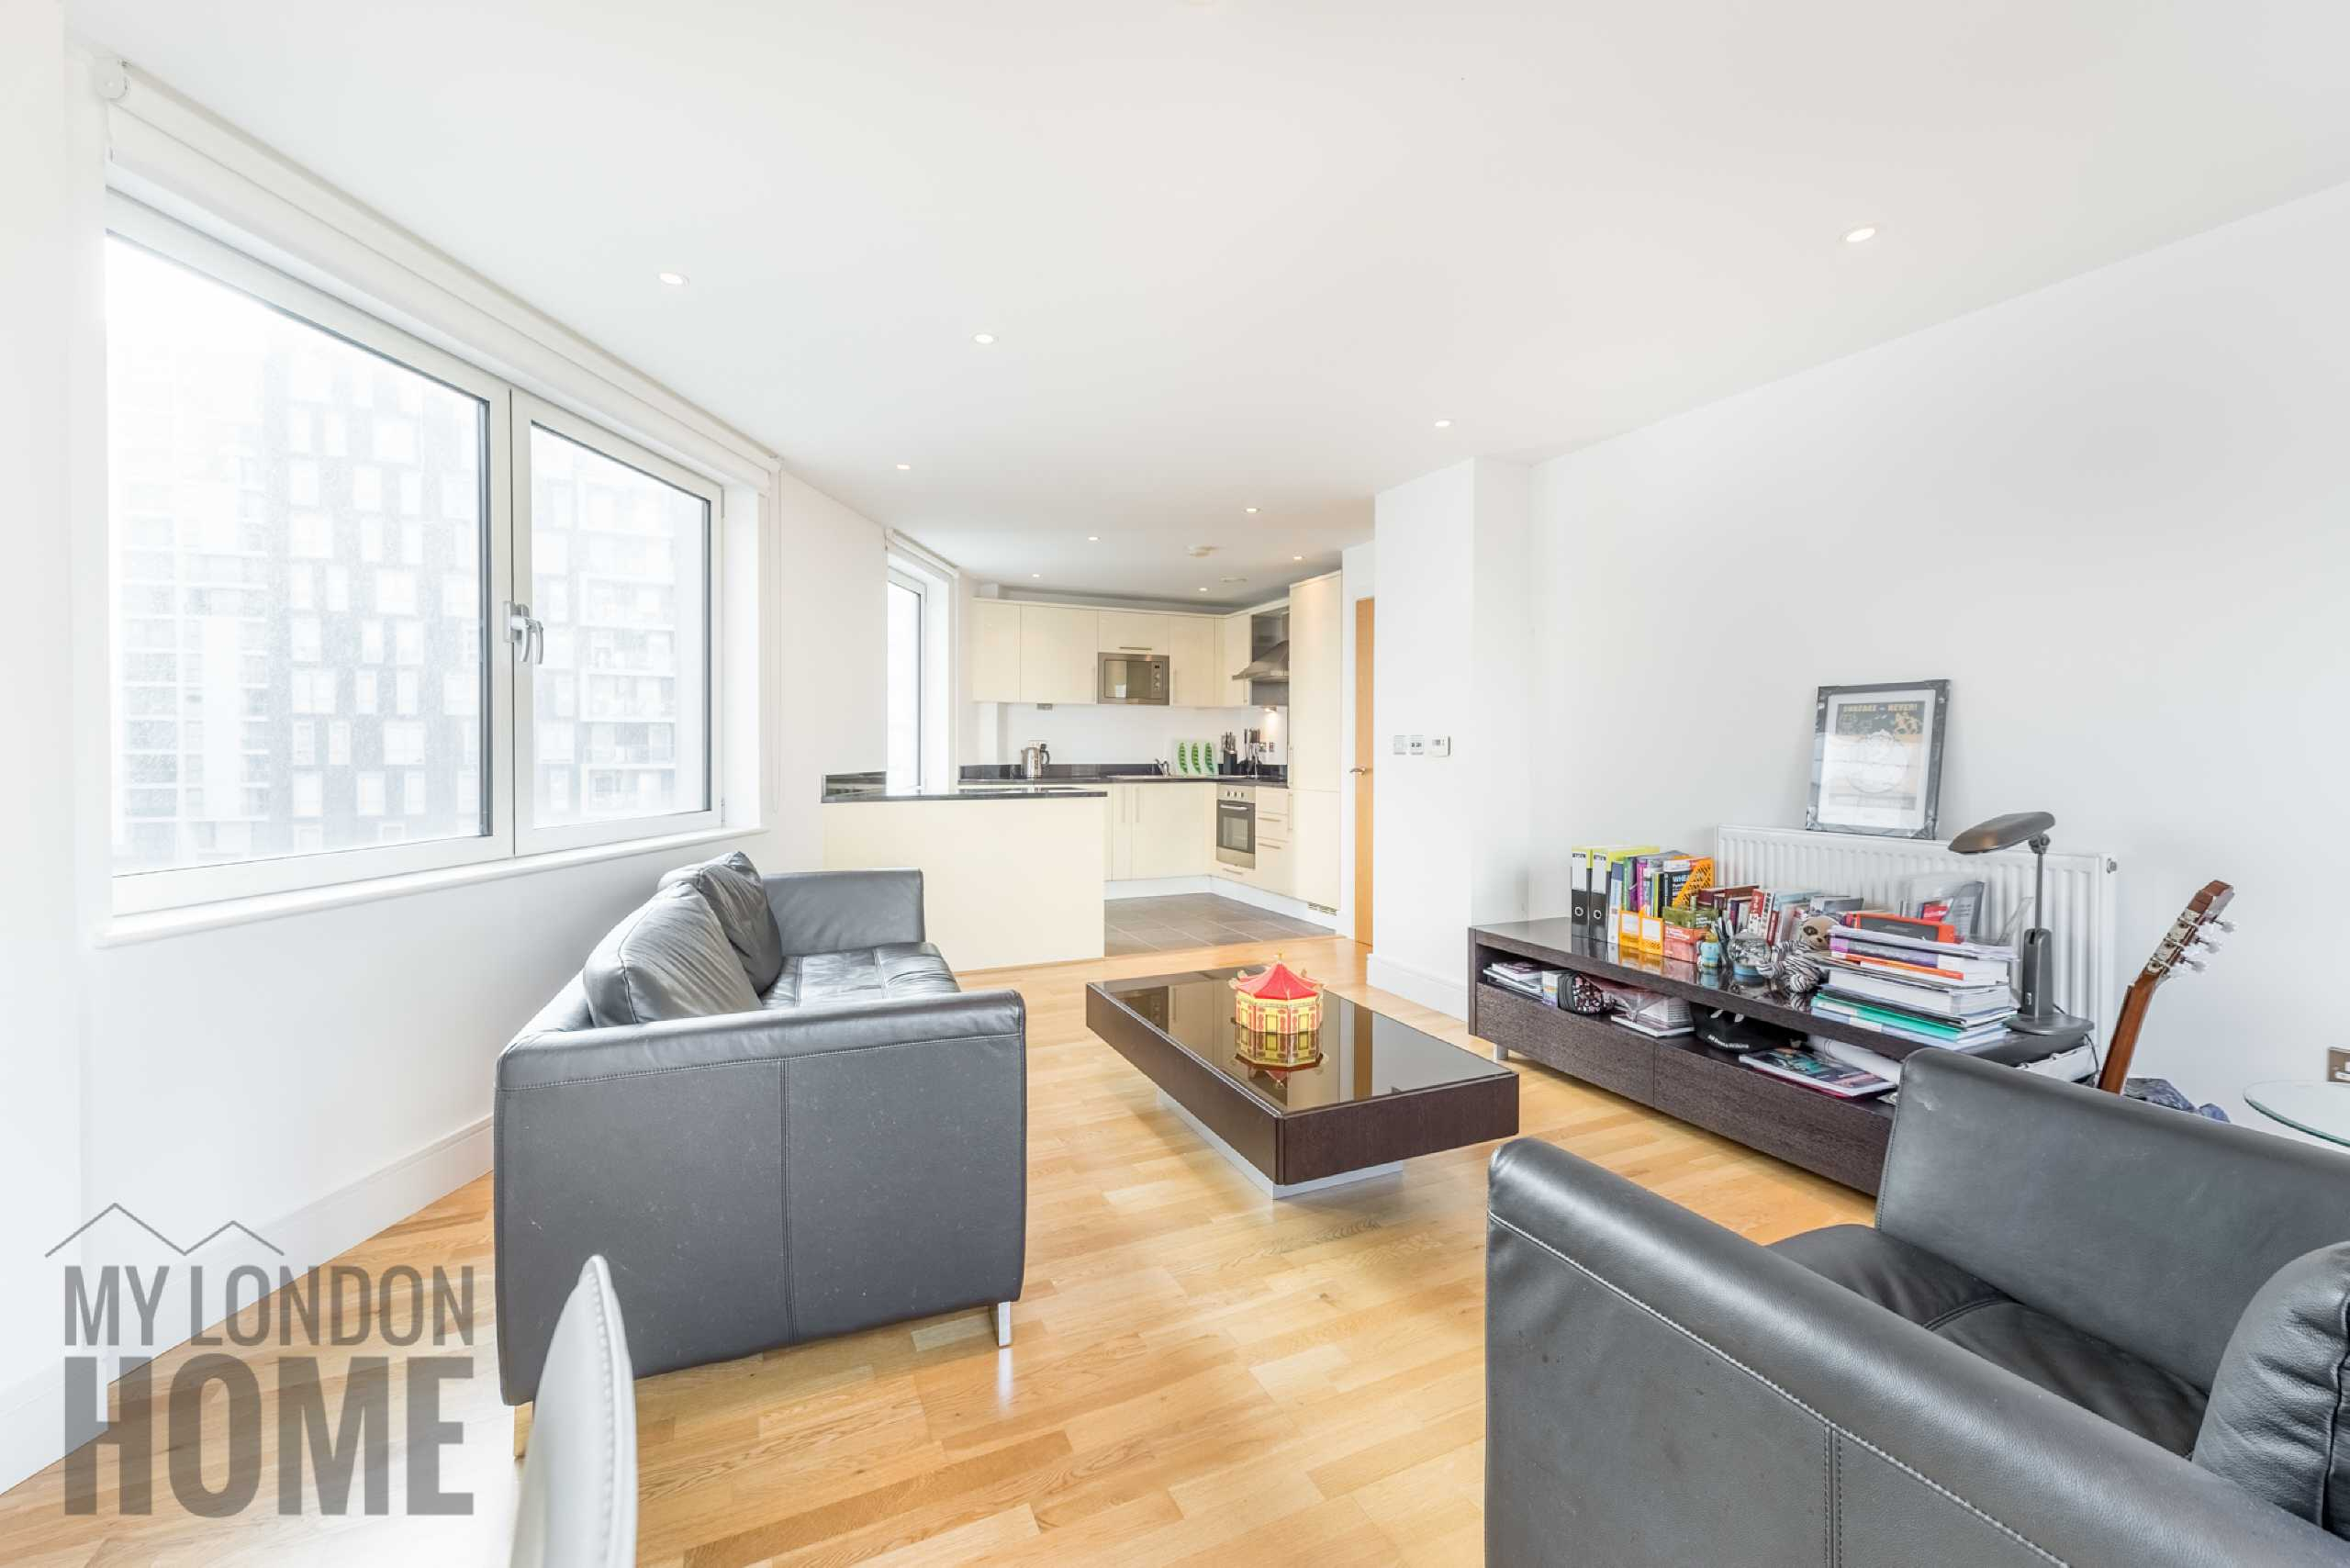 2 Bedrooms Apartment Flat for sale in Indescon Square, Canary Wharf, London, E14